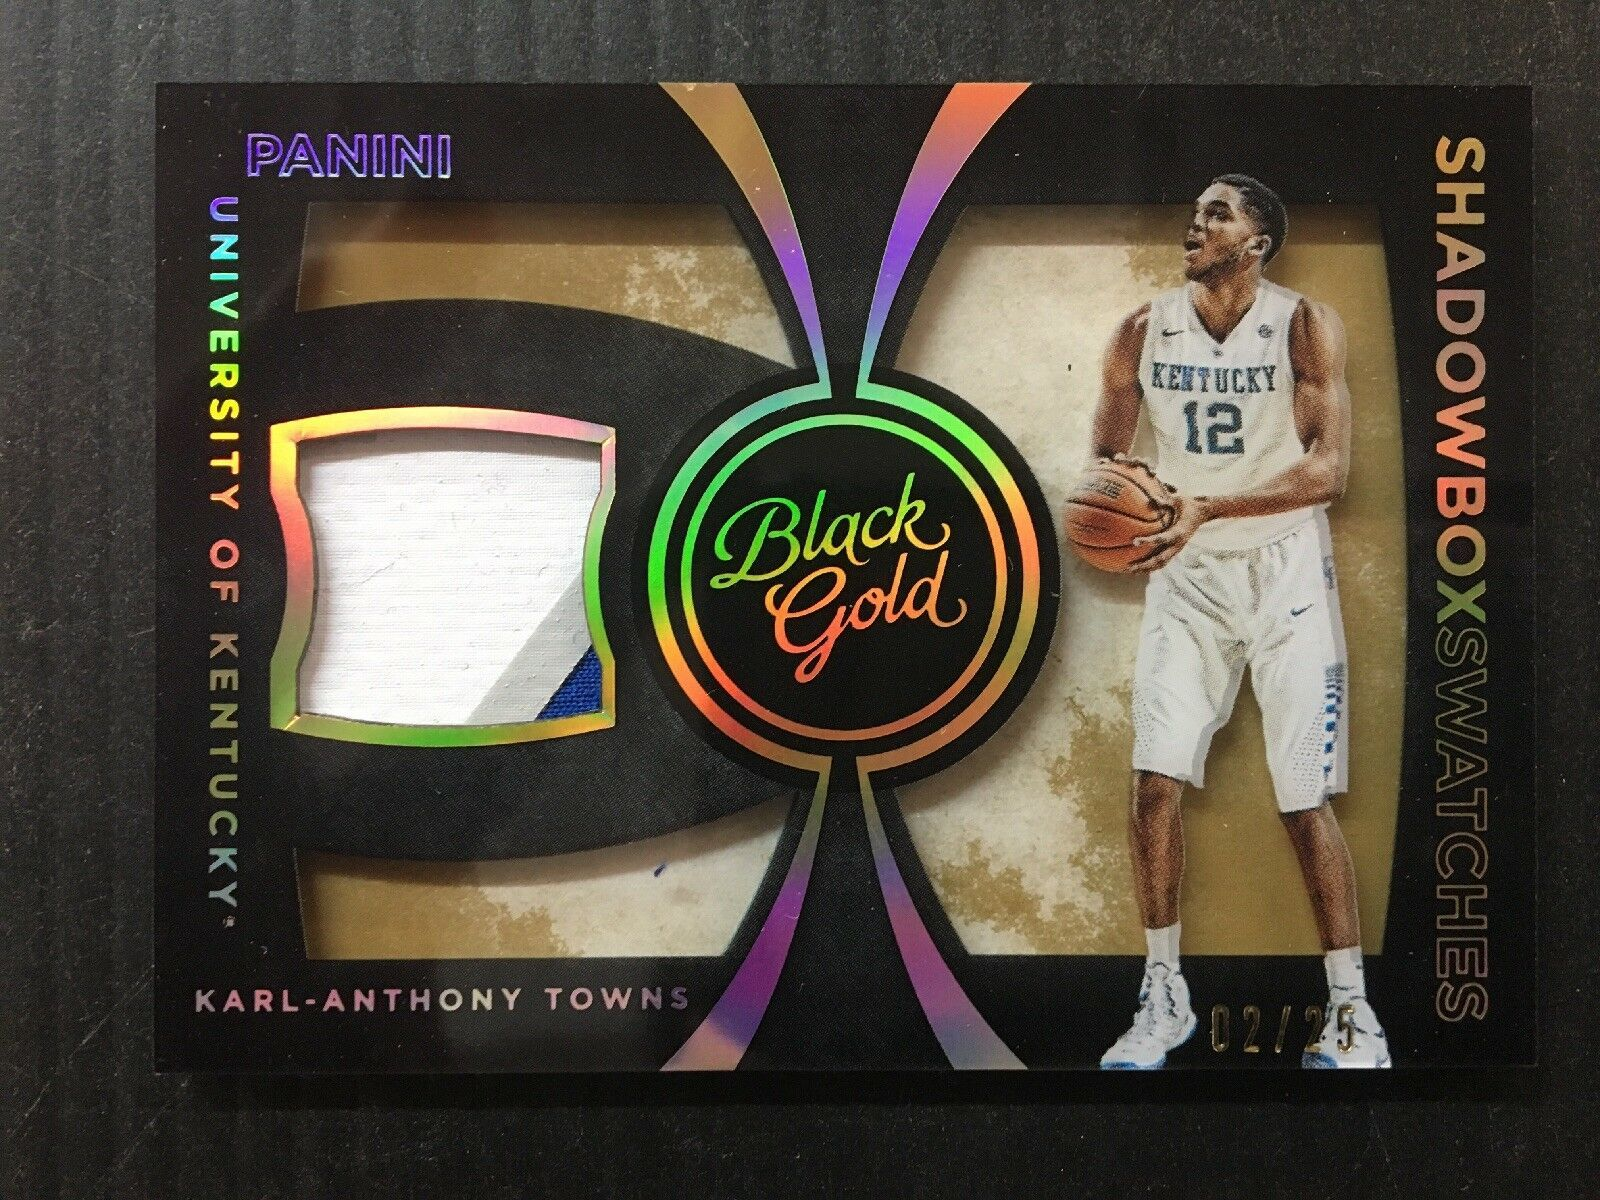 Primary image for KARL-ANTHONY TOWNS 2016 PANINI BLACK GOLD SHADOWBOX SWATCHES /25 3COLOR PATCH B4